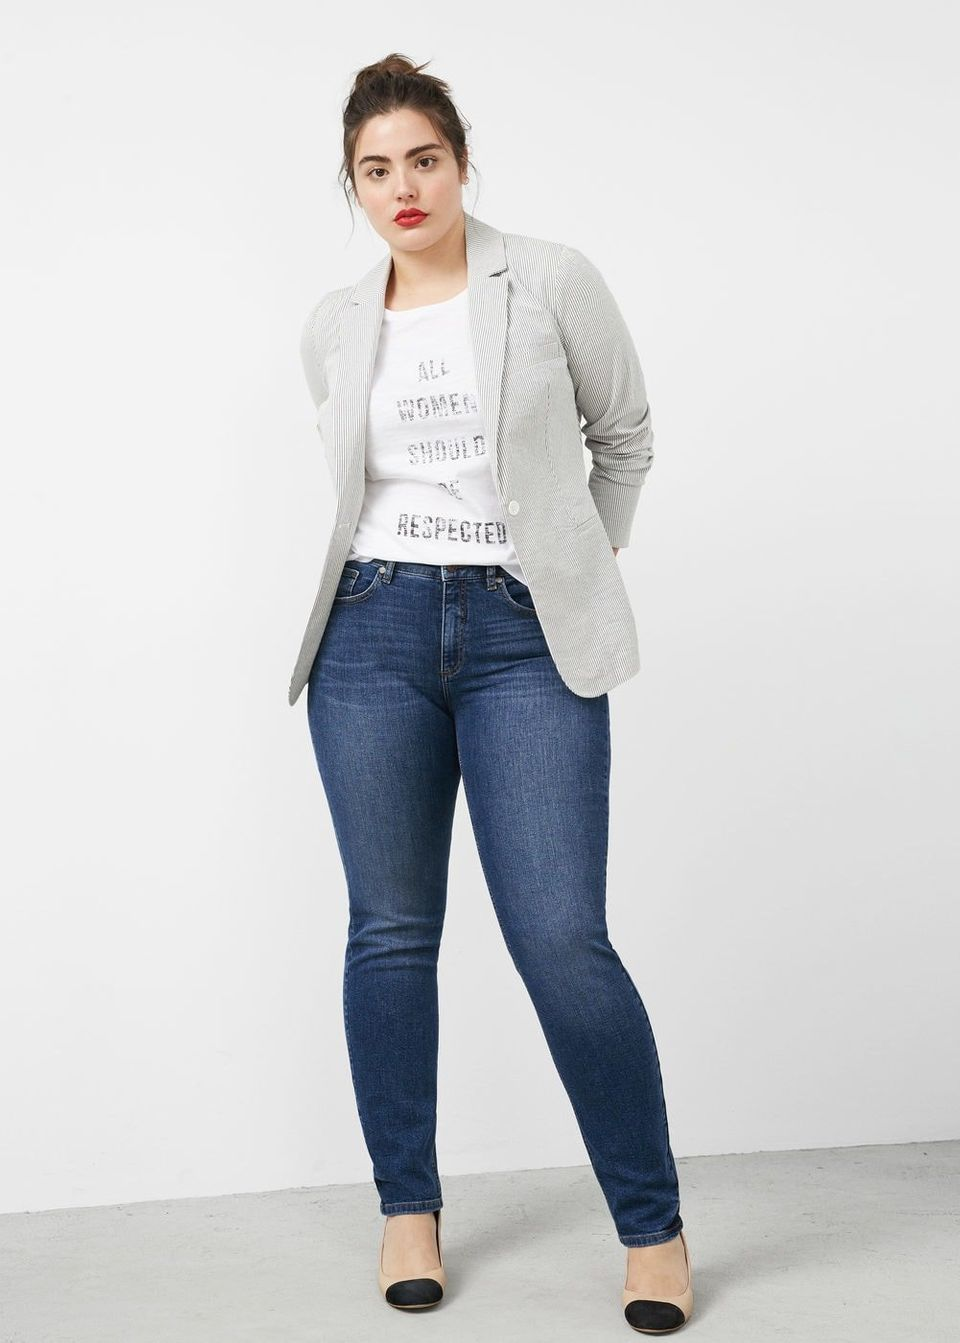 2bc740df42 17 Sites For Plus-Size Jeans And Shorts That Are Stylish And ...